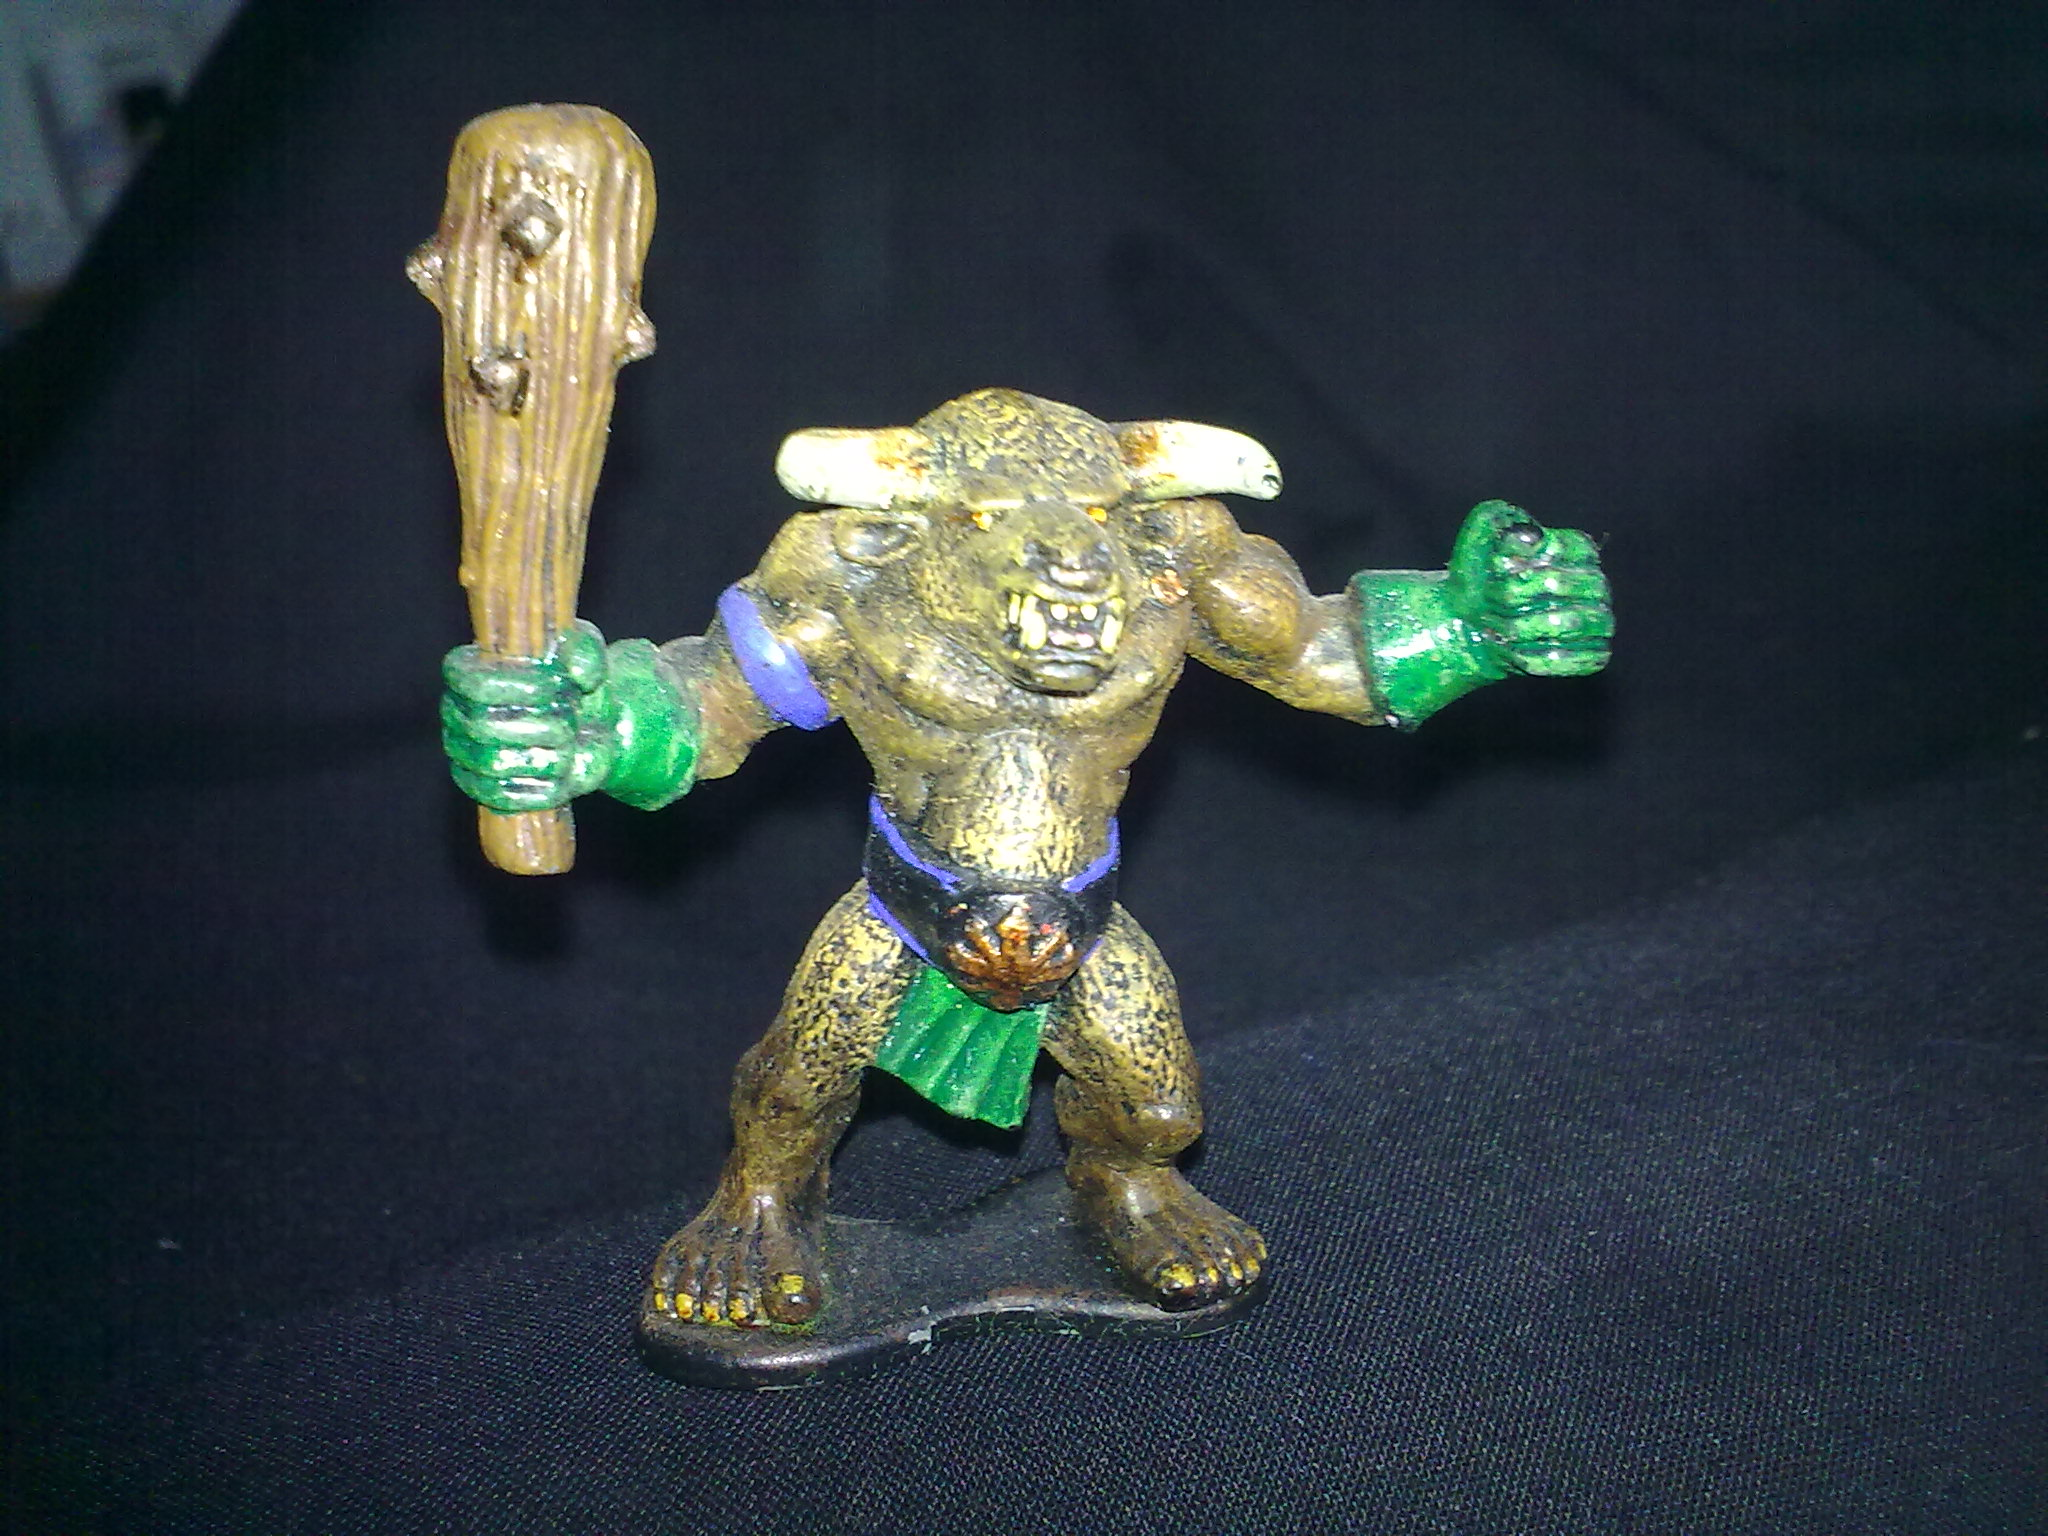 Minotaur, painted by Questing Knight